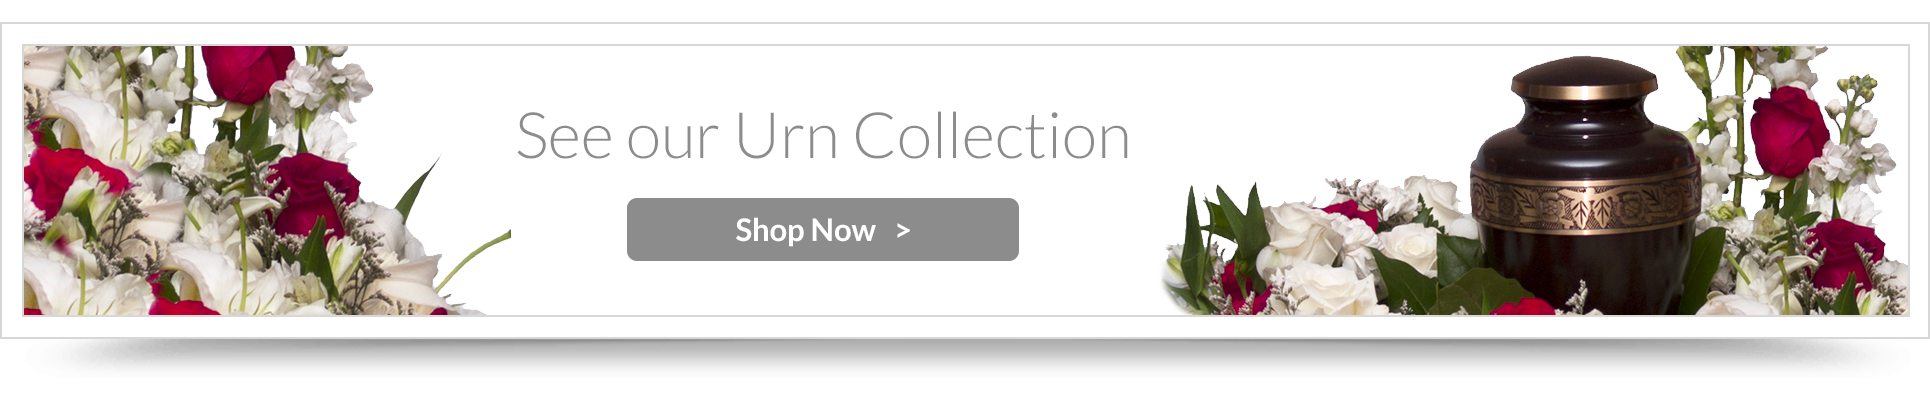 See Our Urn Collection - Urn Store